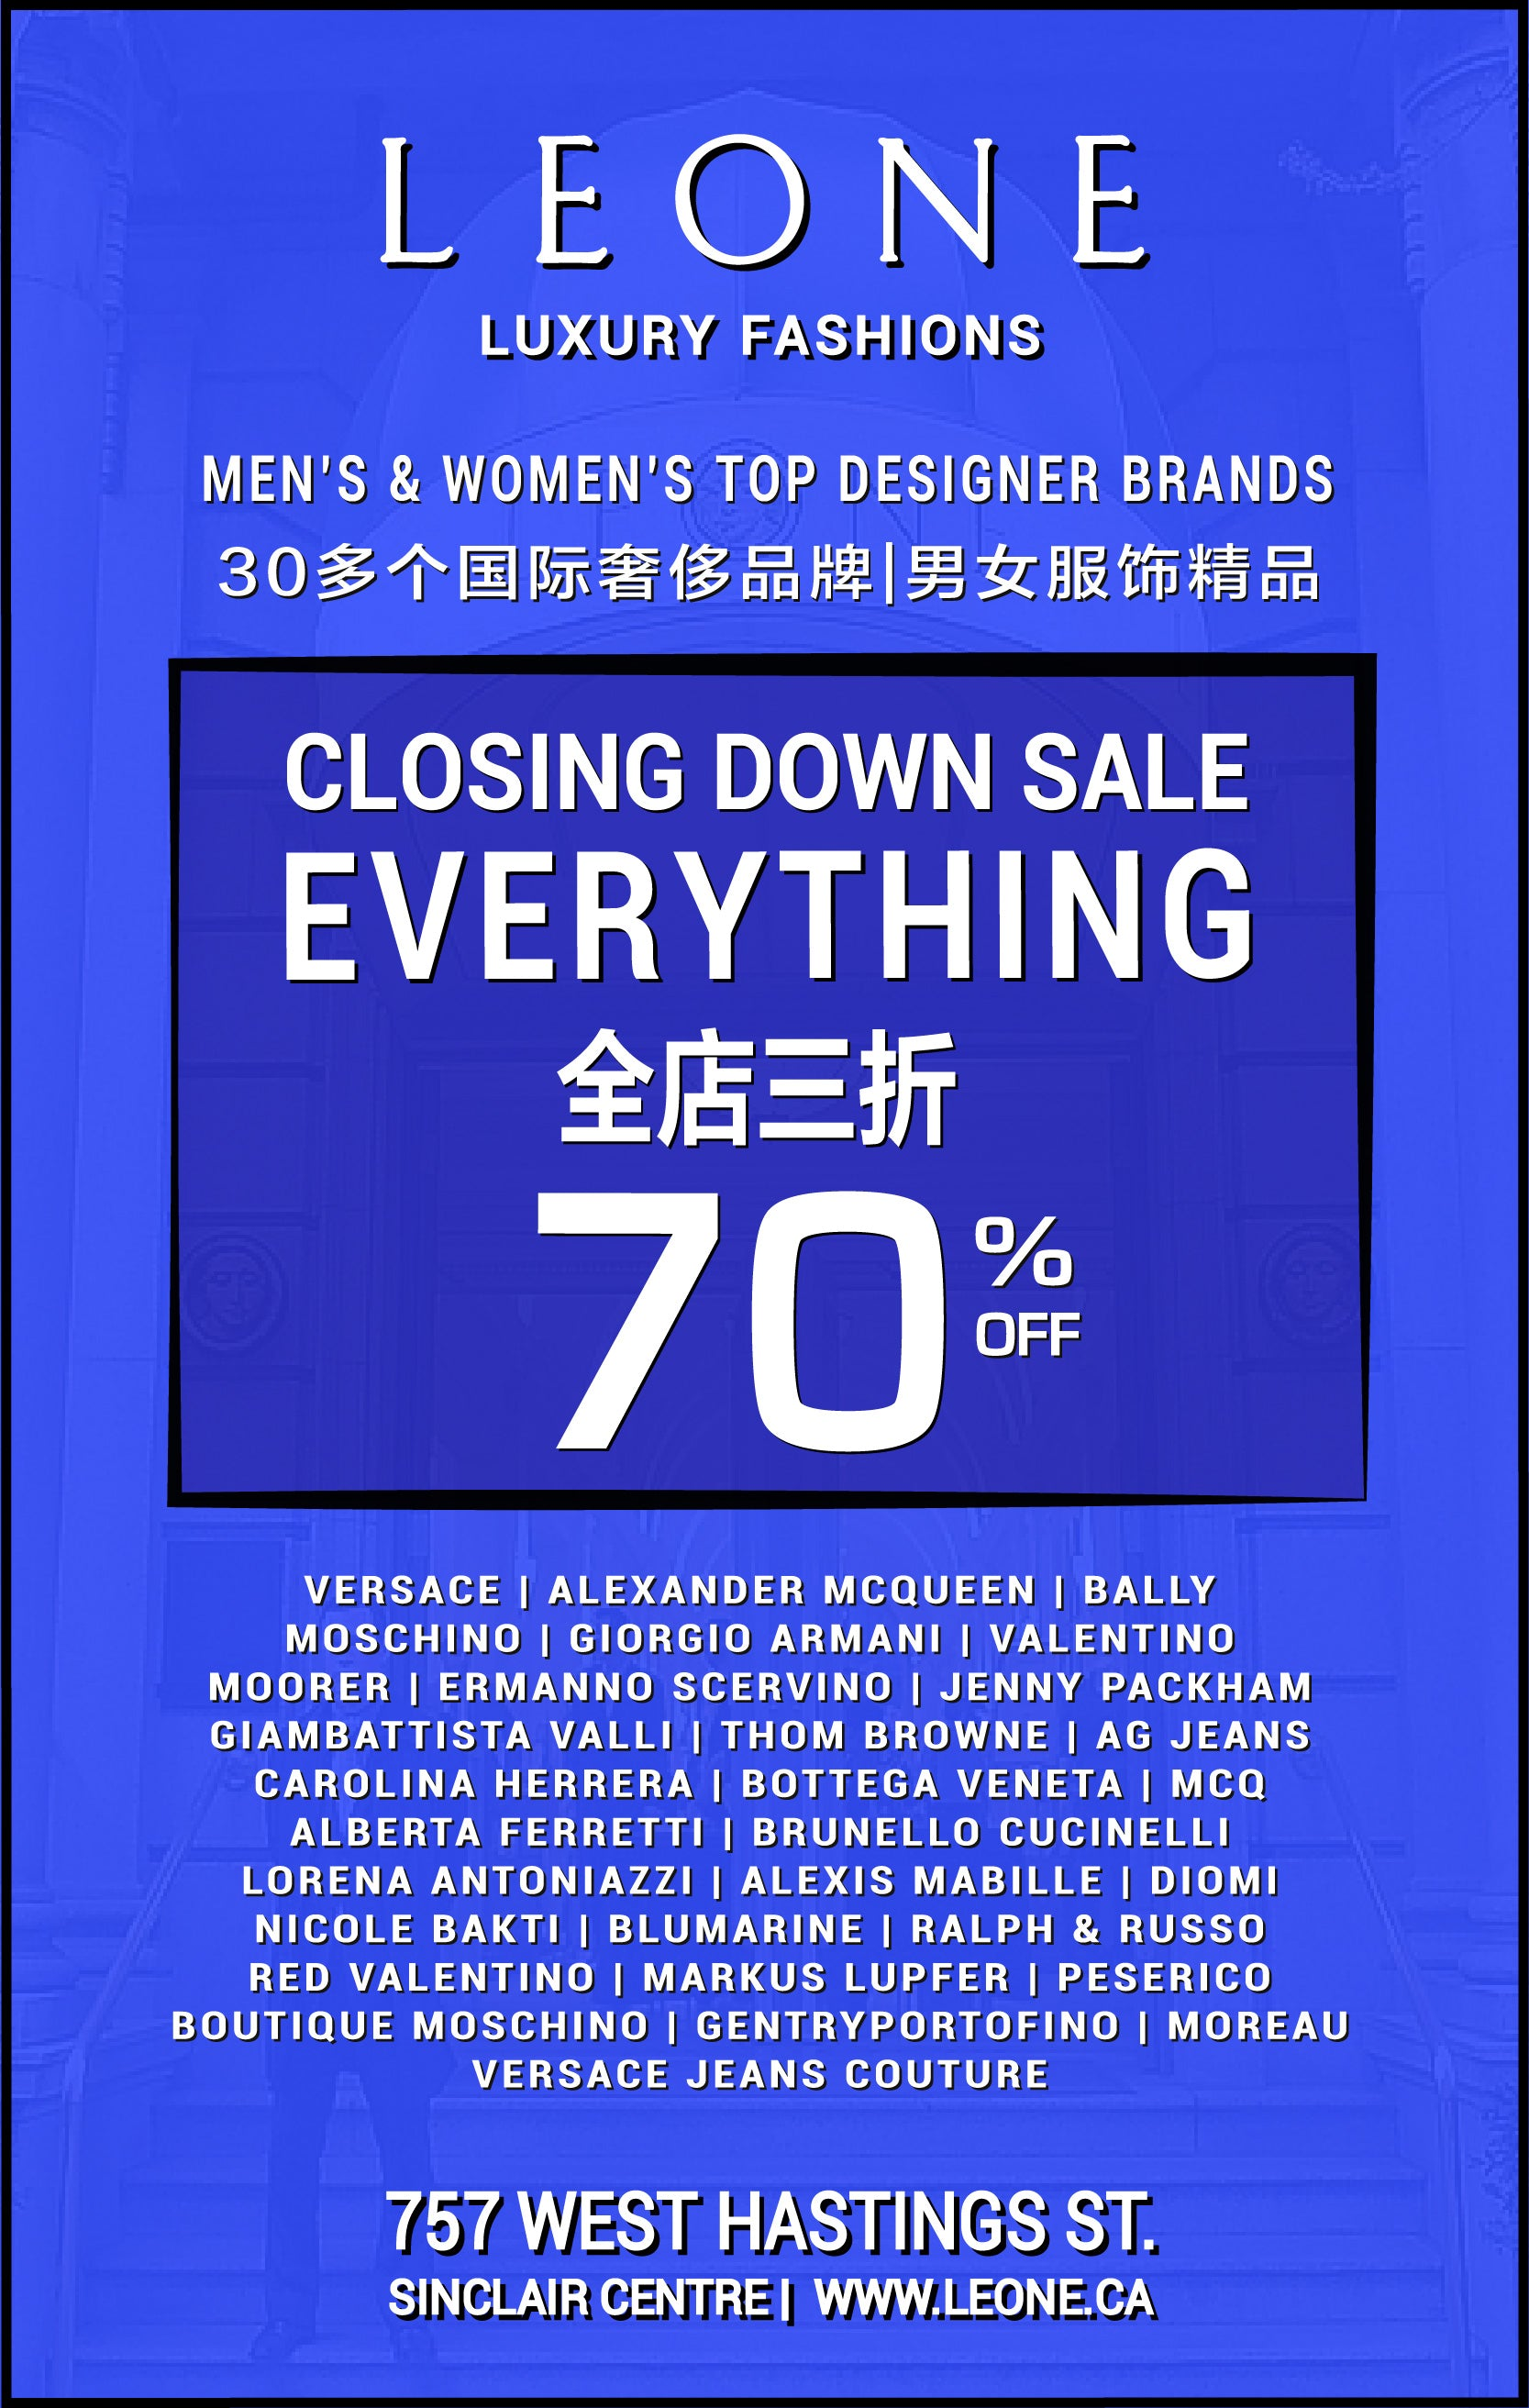 Everything > NOW 70% OFF